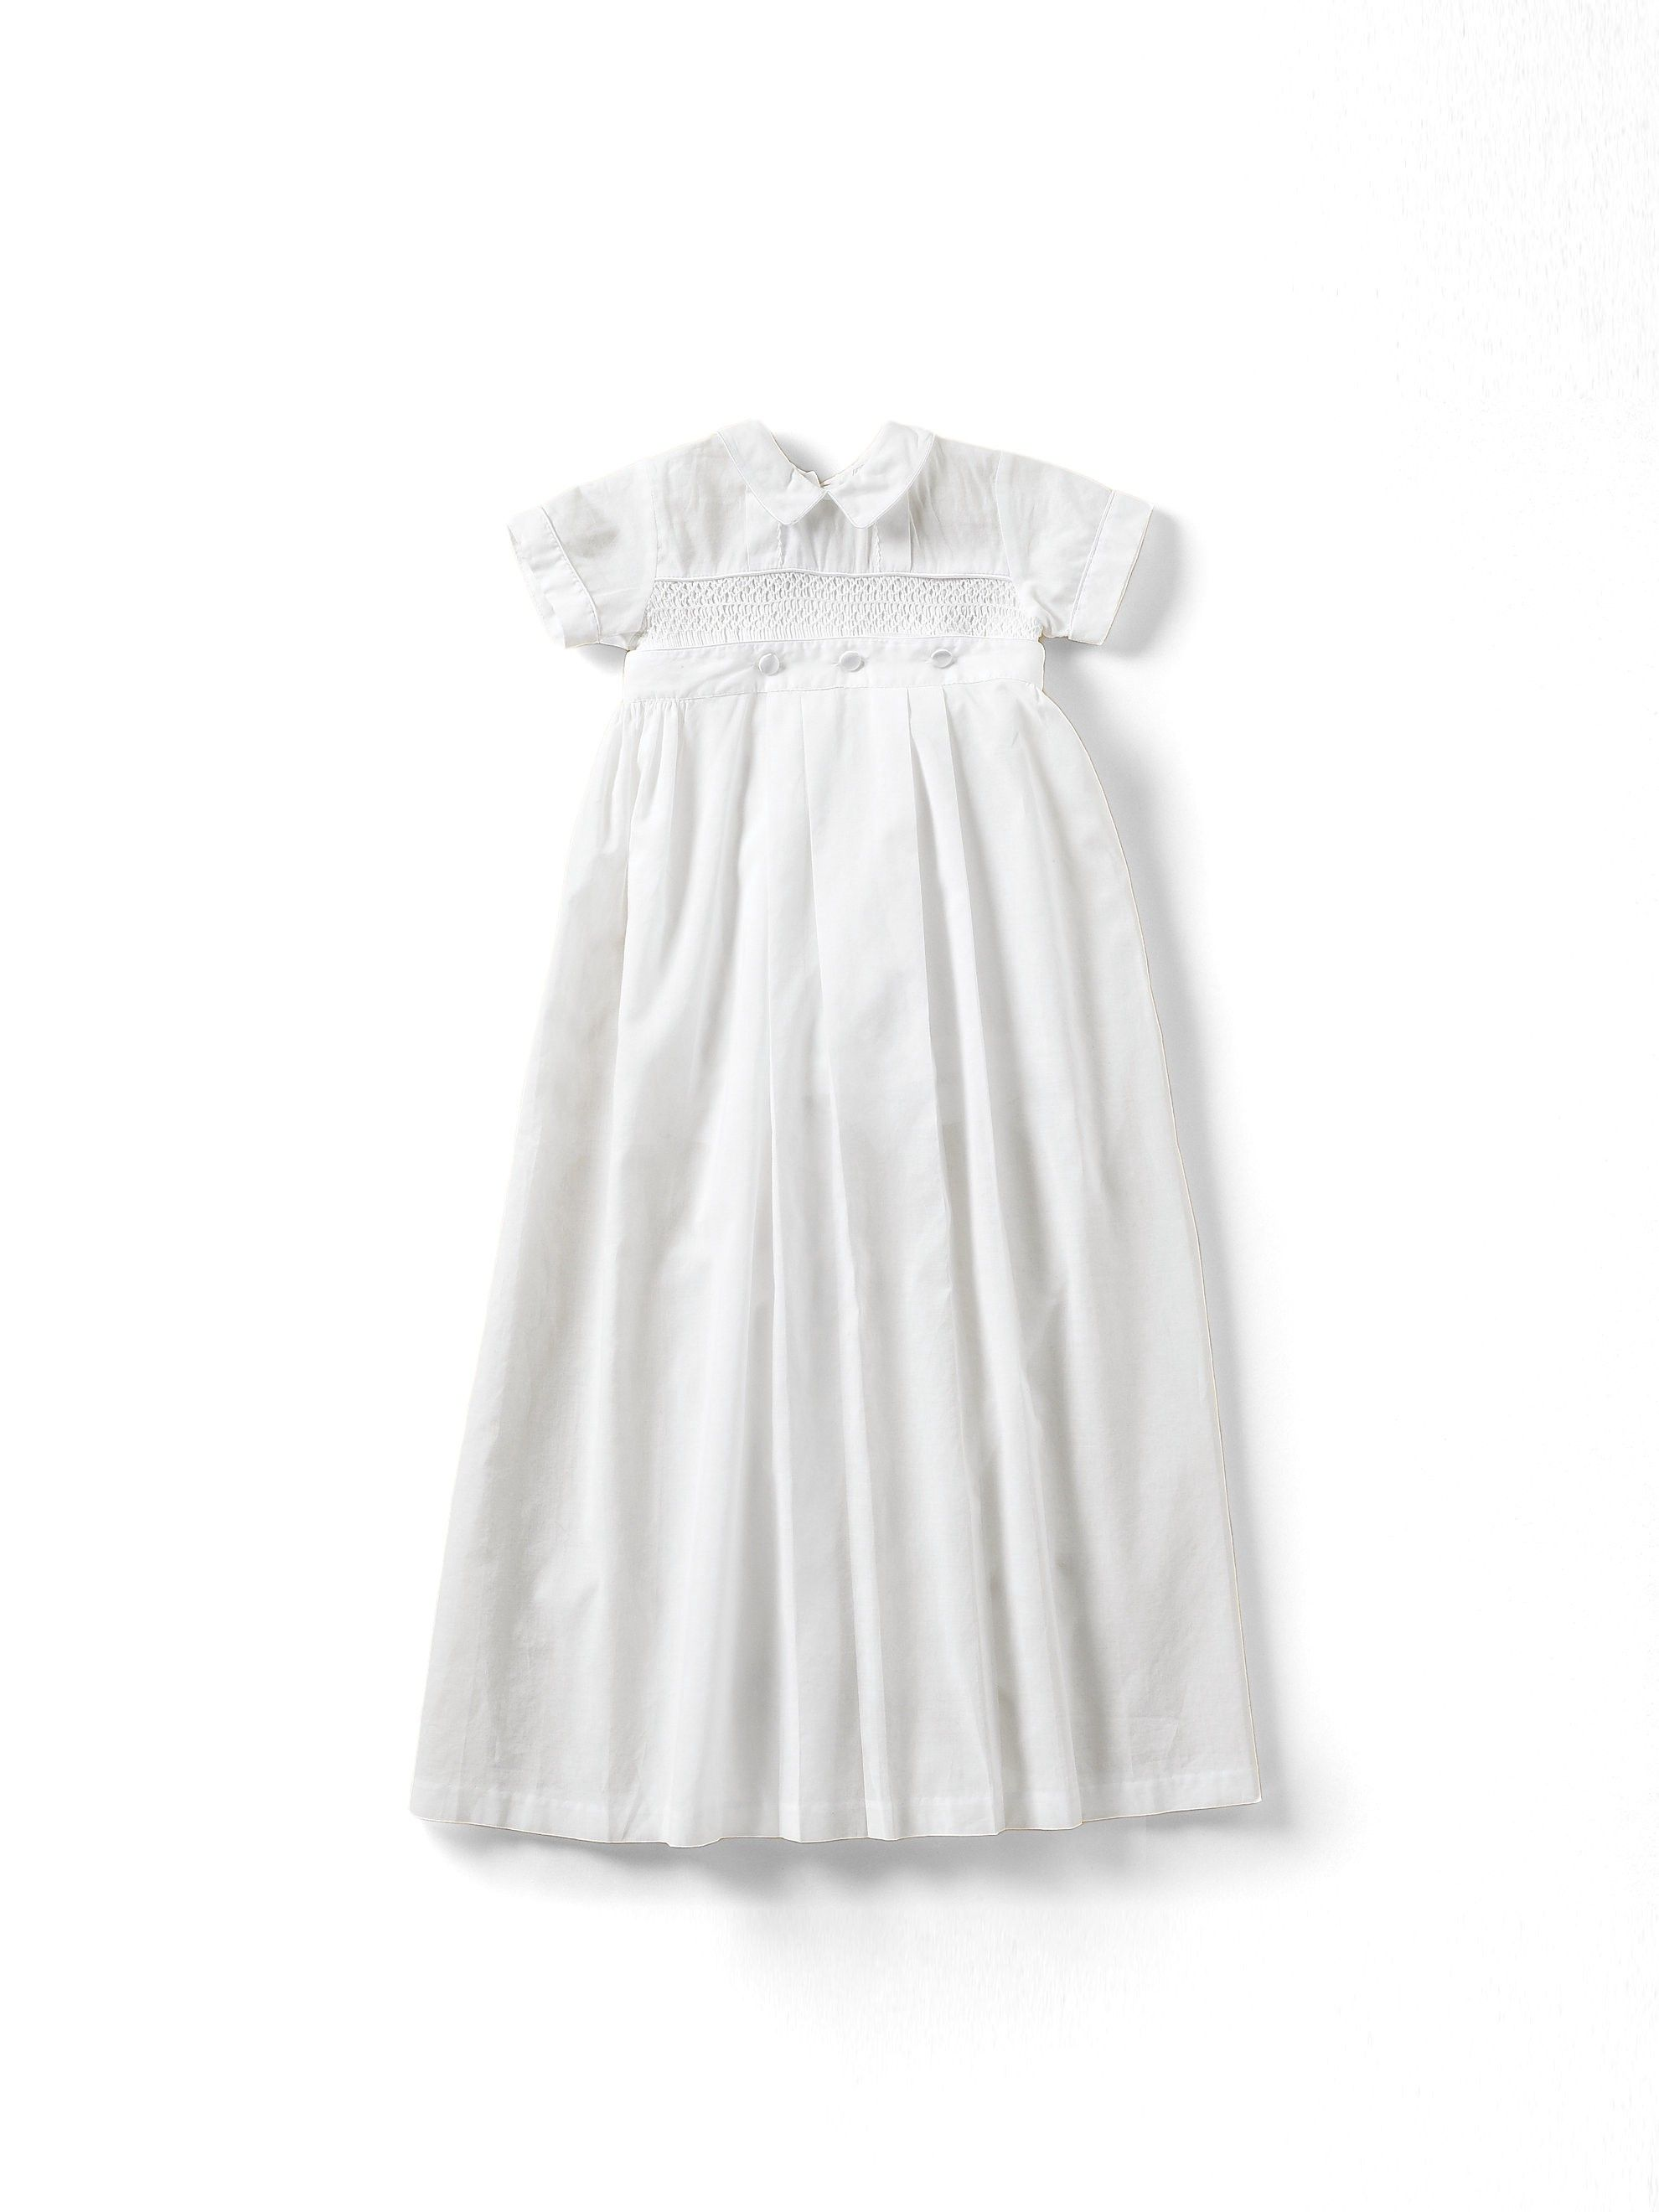 Kissy Baby\'s Christening Gown - White 0-3 Months | Products ...